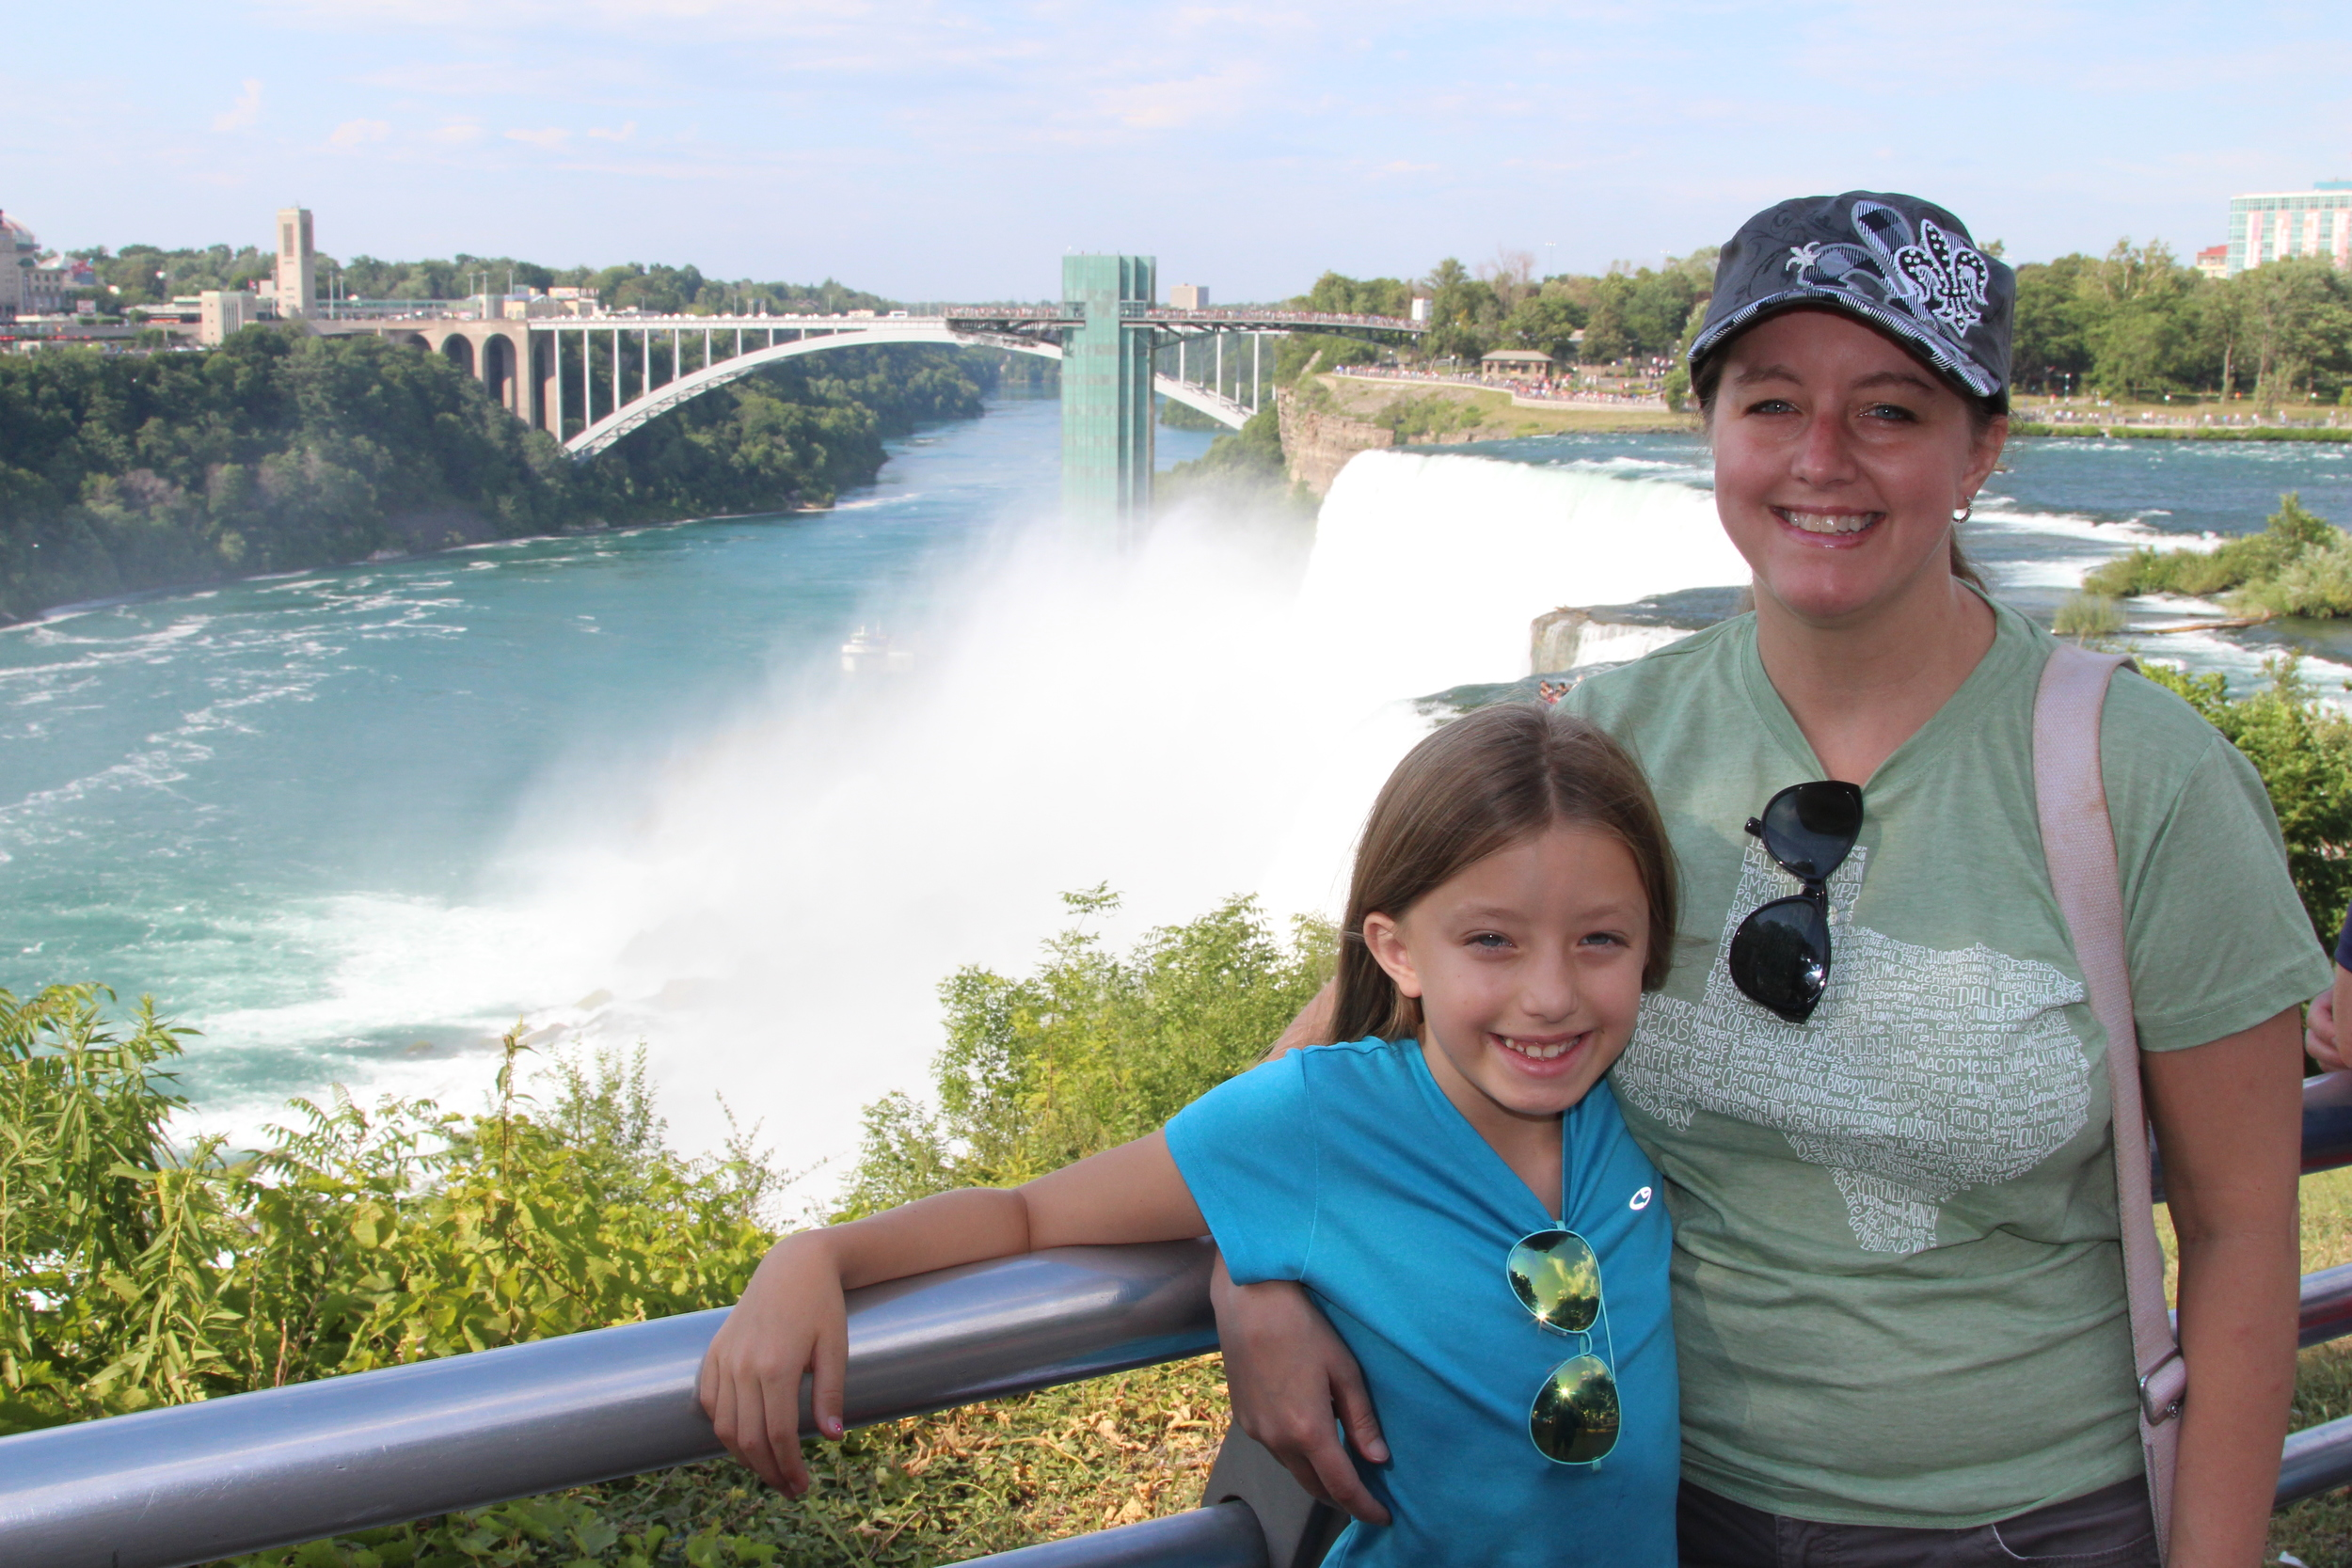 So happy to be seeing the Falls with my girl!